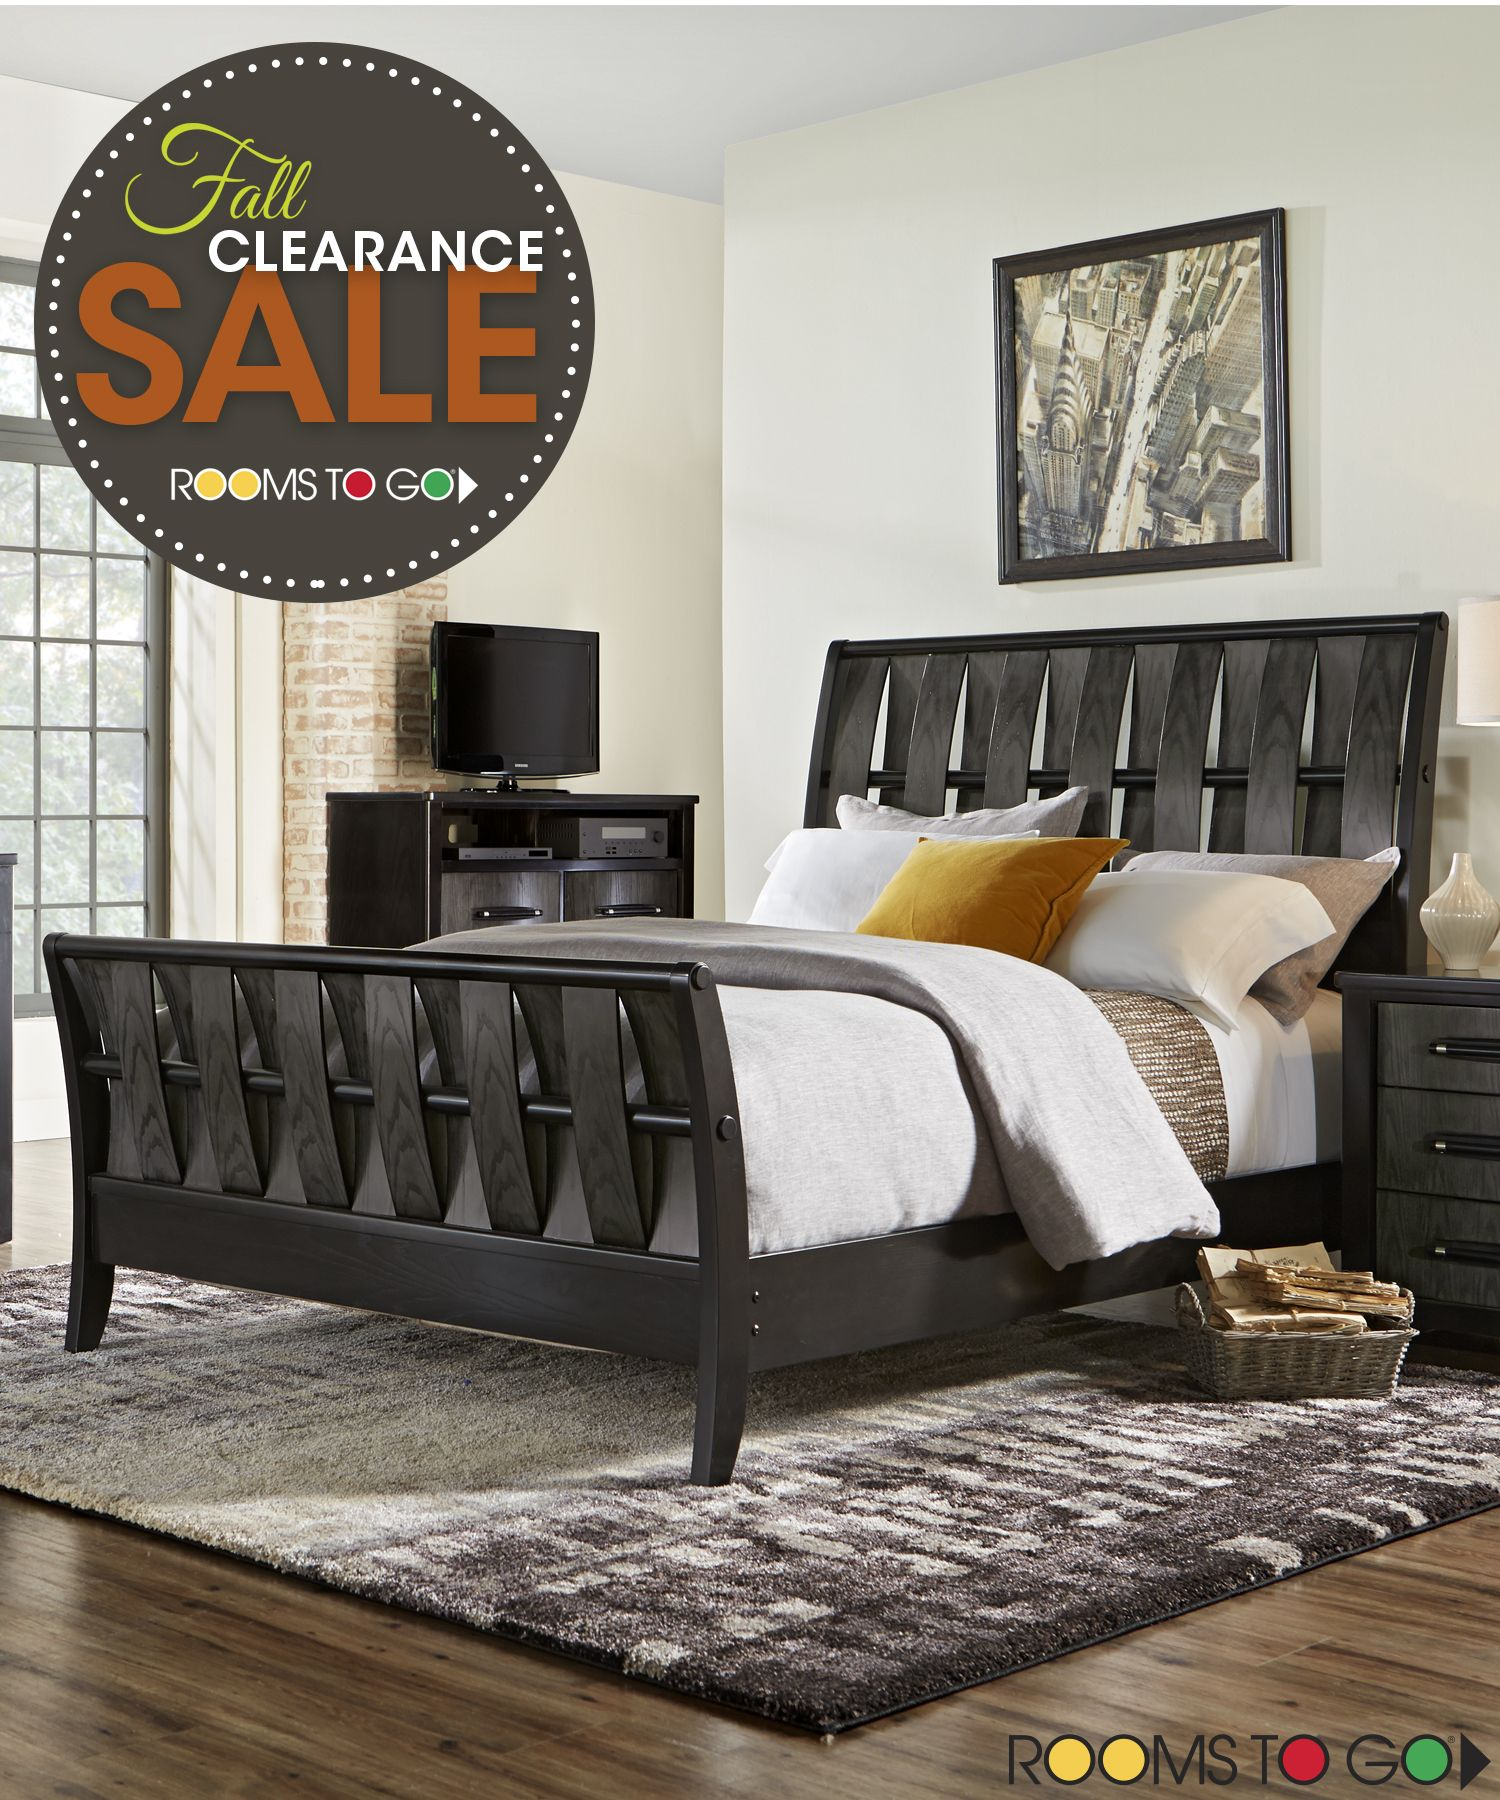 Exceptional Visit Rooms To Go Now During Our Fall Clearance Sales Event, And Save On Our